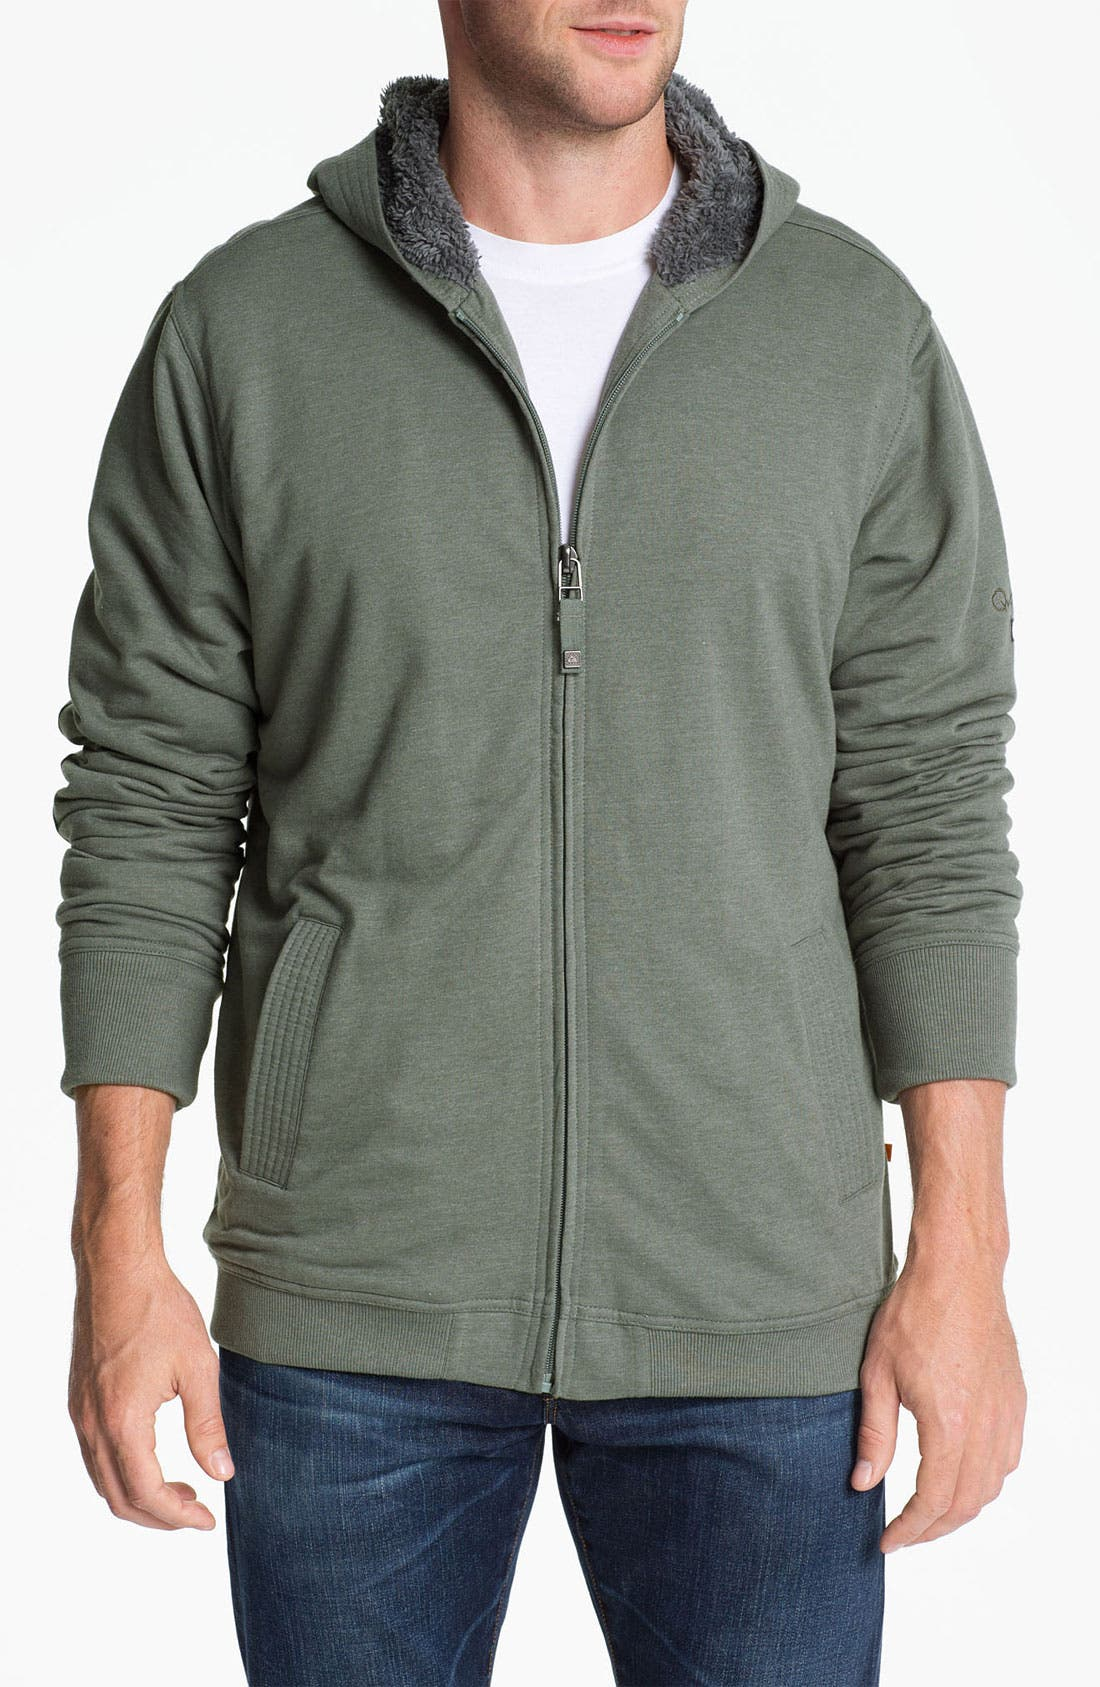 Alternate Image 1 Selected - Quiksilver 'Tofino Beach' Zip Hoodie